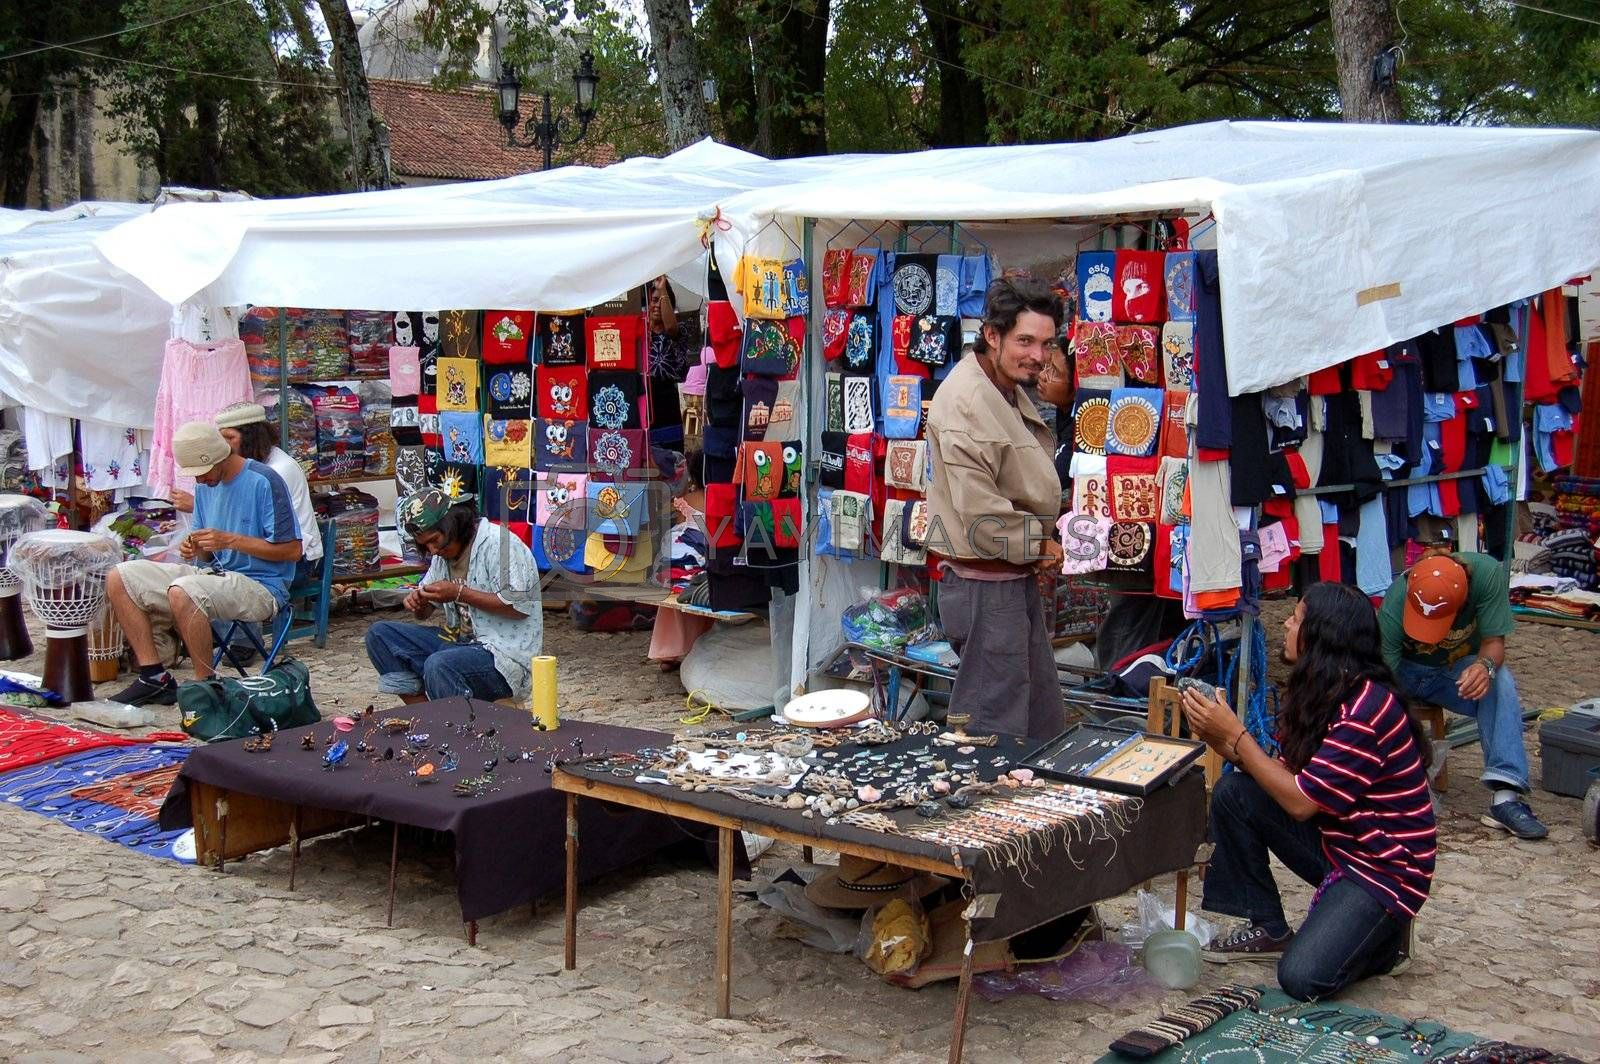 Flea Market Vendors Selling Jewellery in Chiapas, Mexico